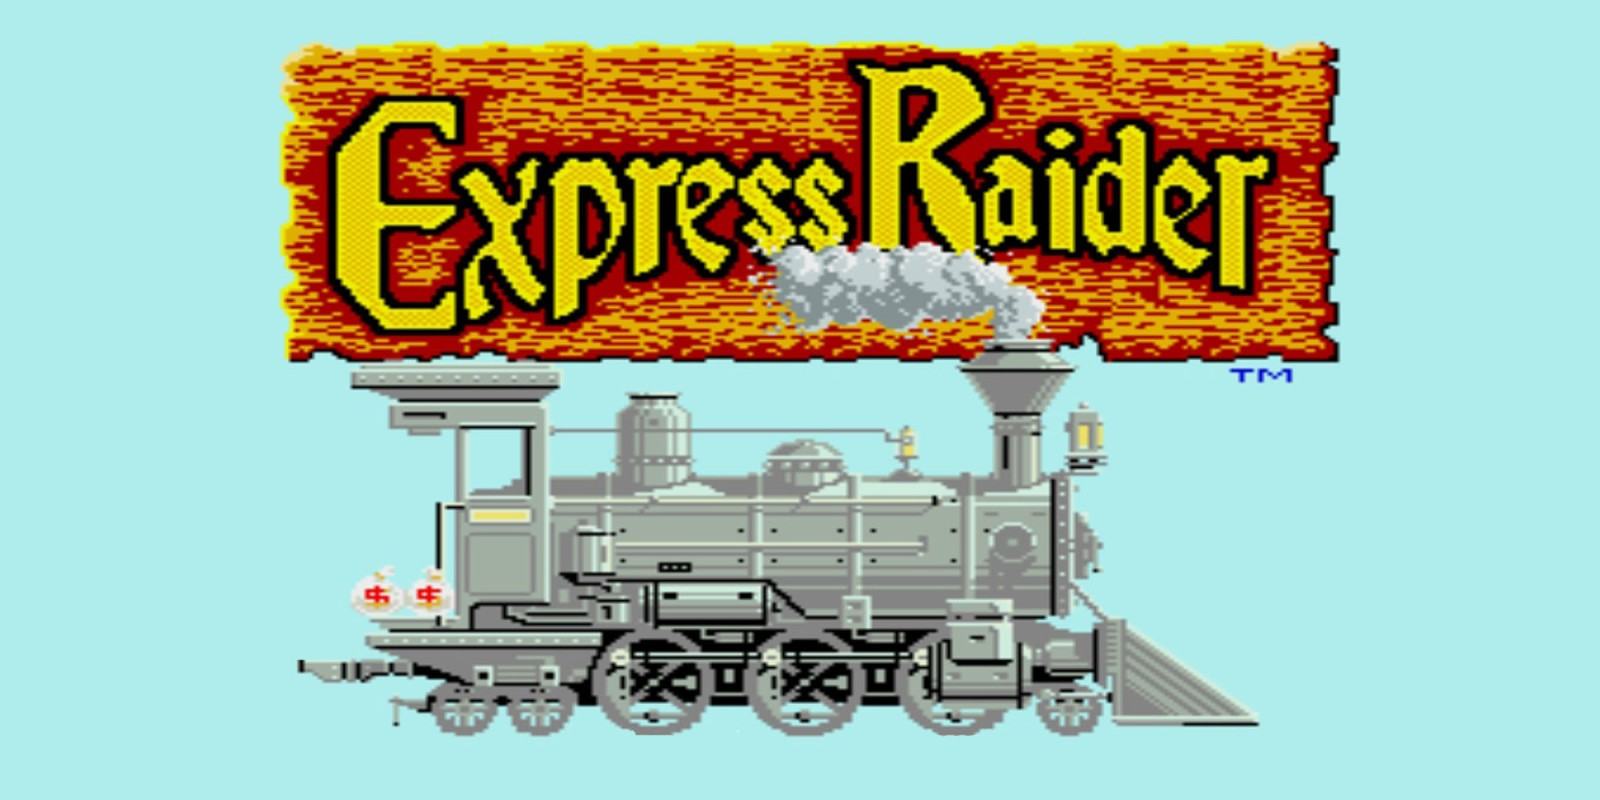 Johnny Turbo's Arcade: Express Raider